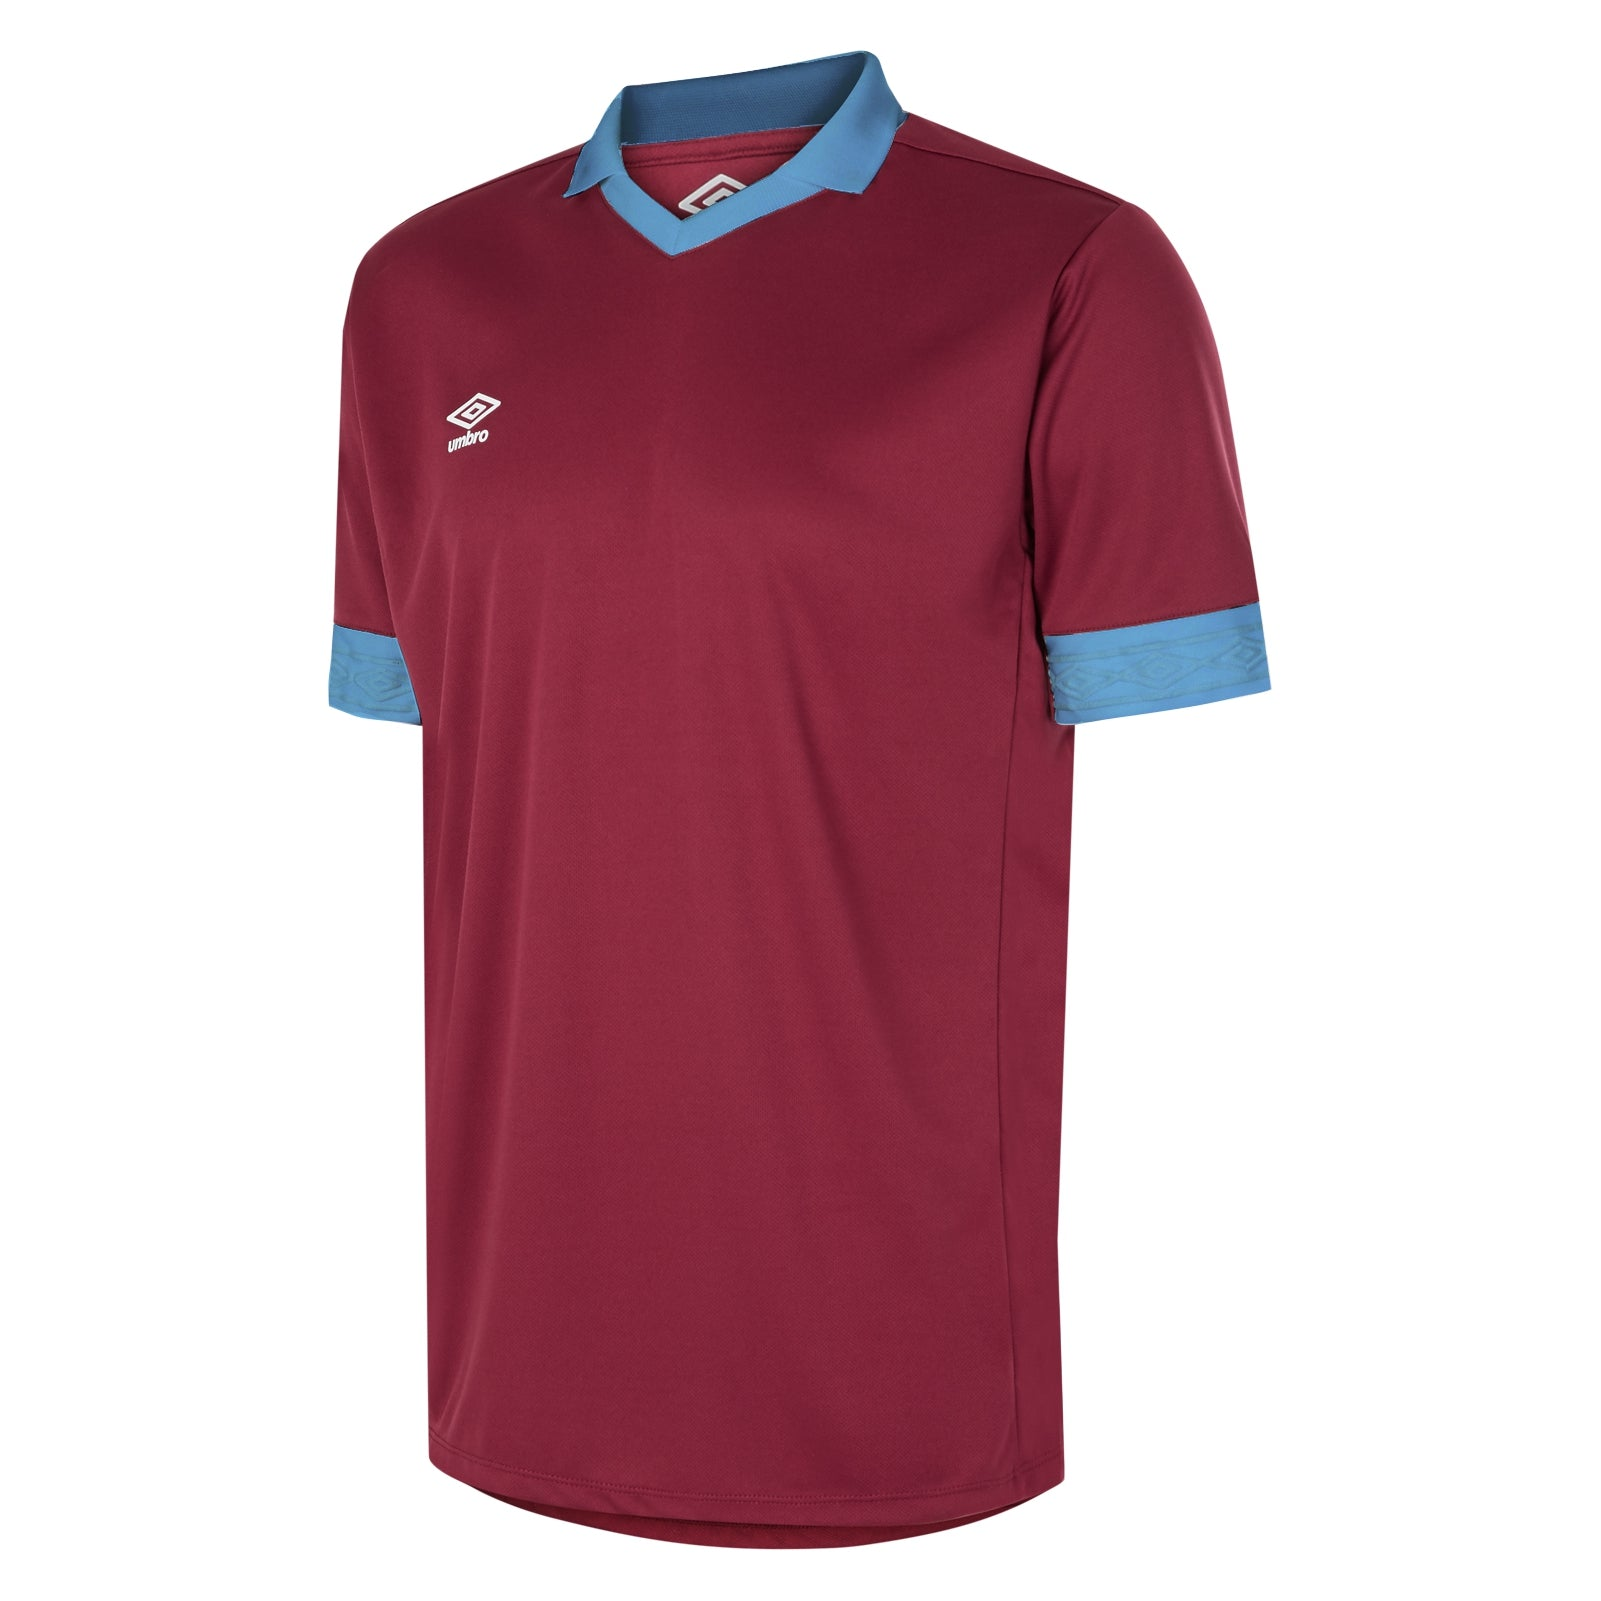 Umbro Tempest jersey short sleeve in new claret with contrast sky blue collar and cuff